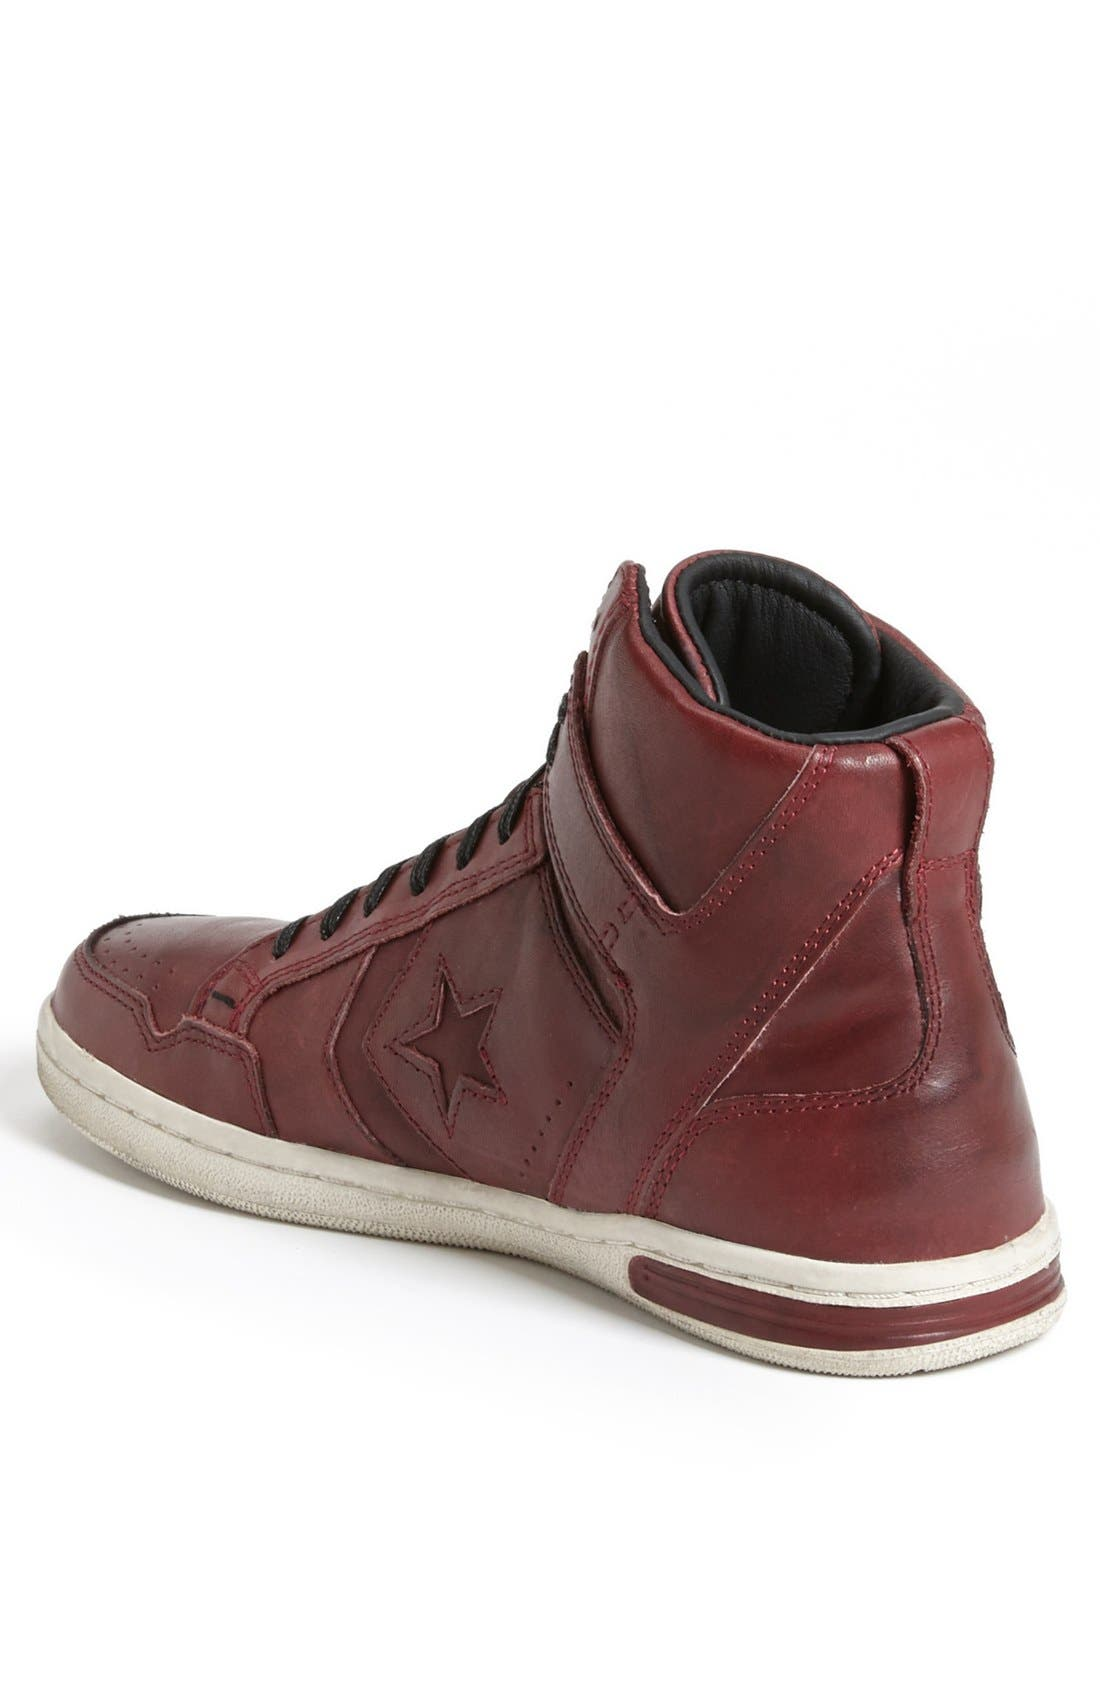 Alternate Image 2  - Converse by John Varvatos 'Weapon' Sneaker (Online Only)